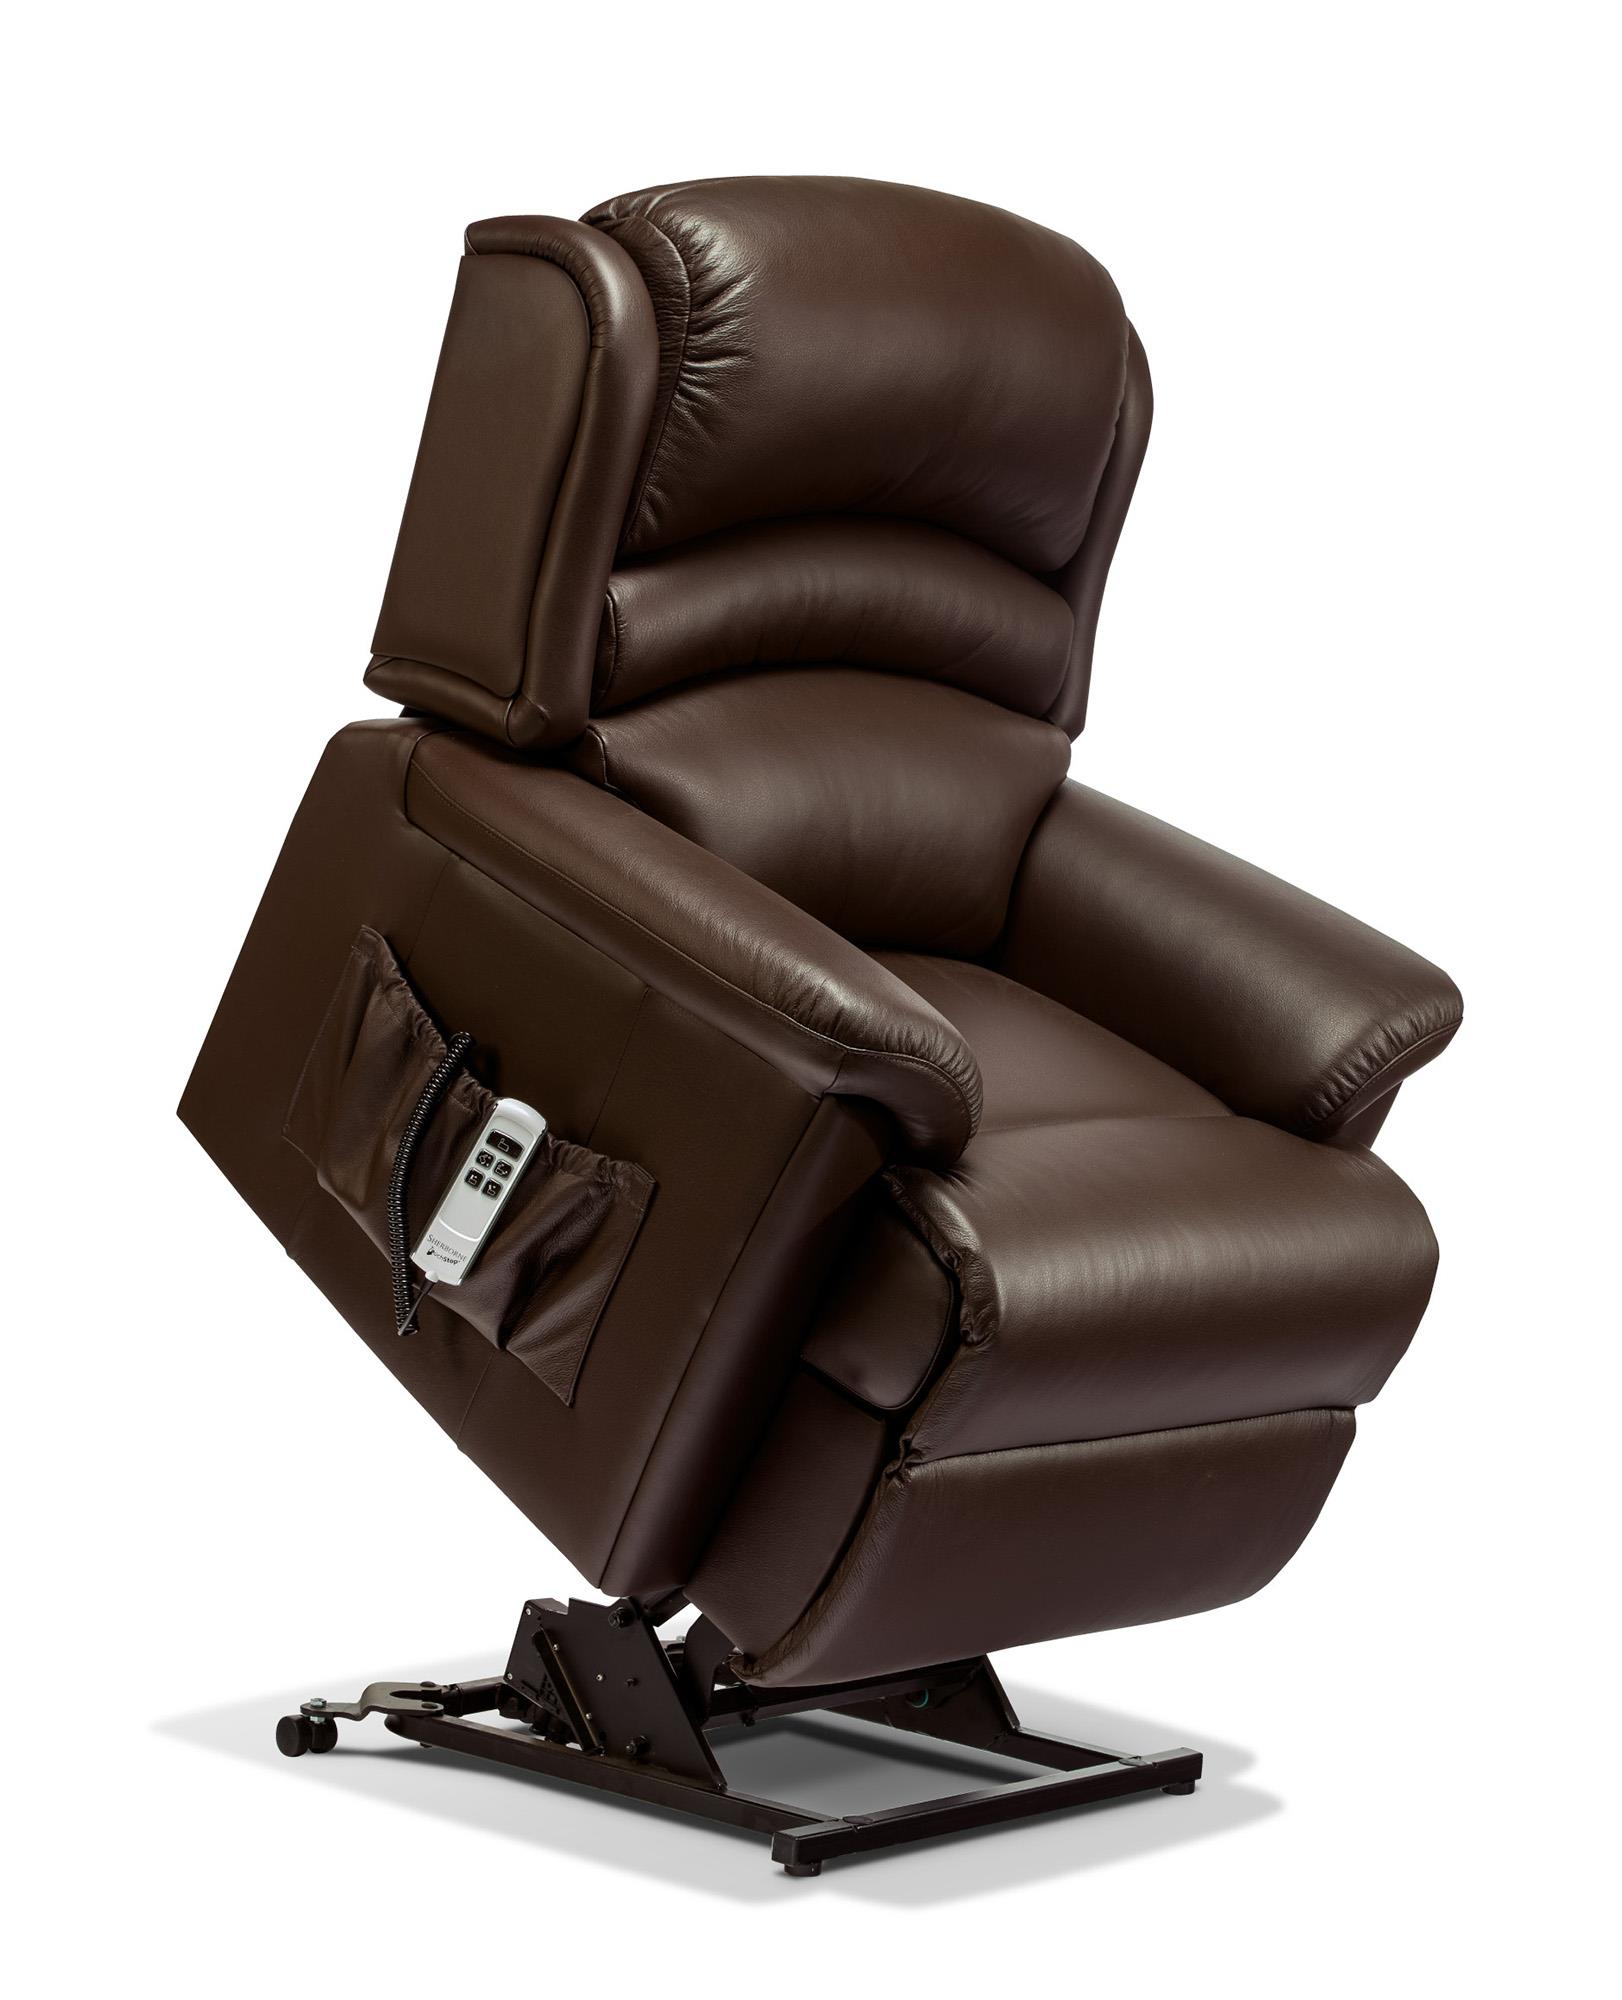 OLIVIA - Leather  Lift & Rise Recliner Chair